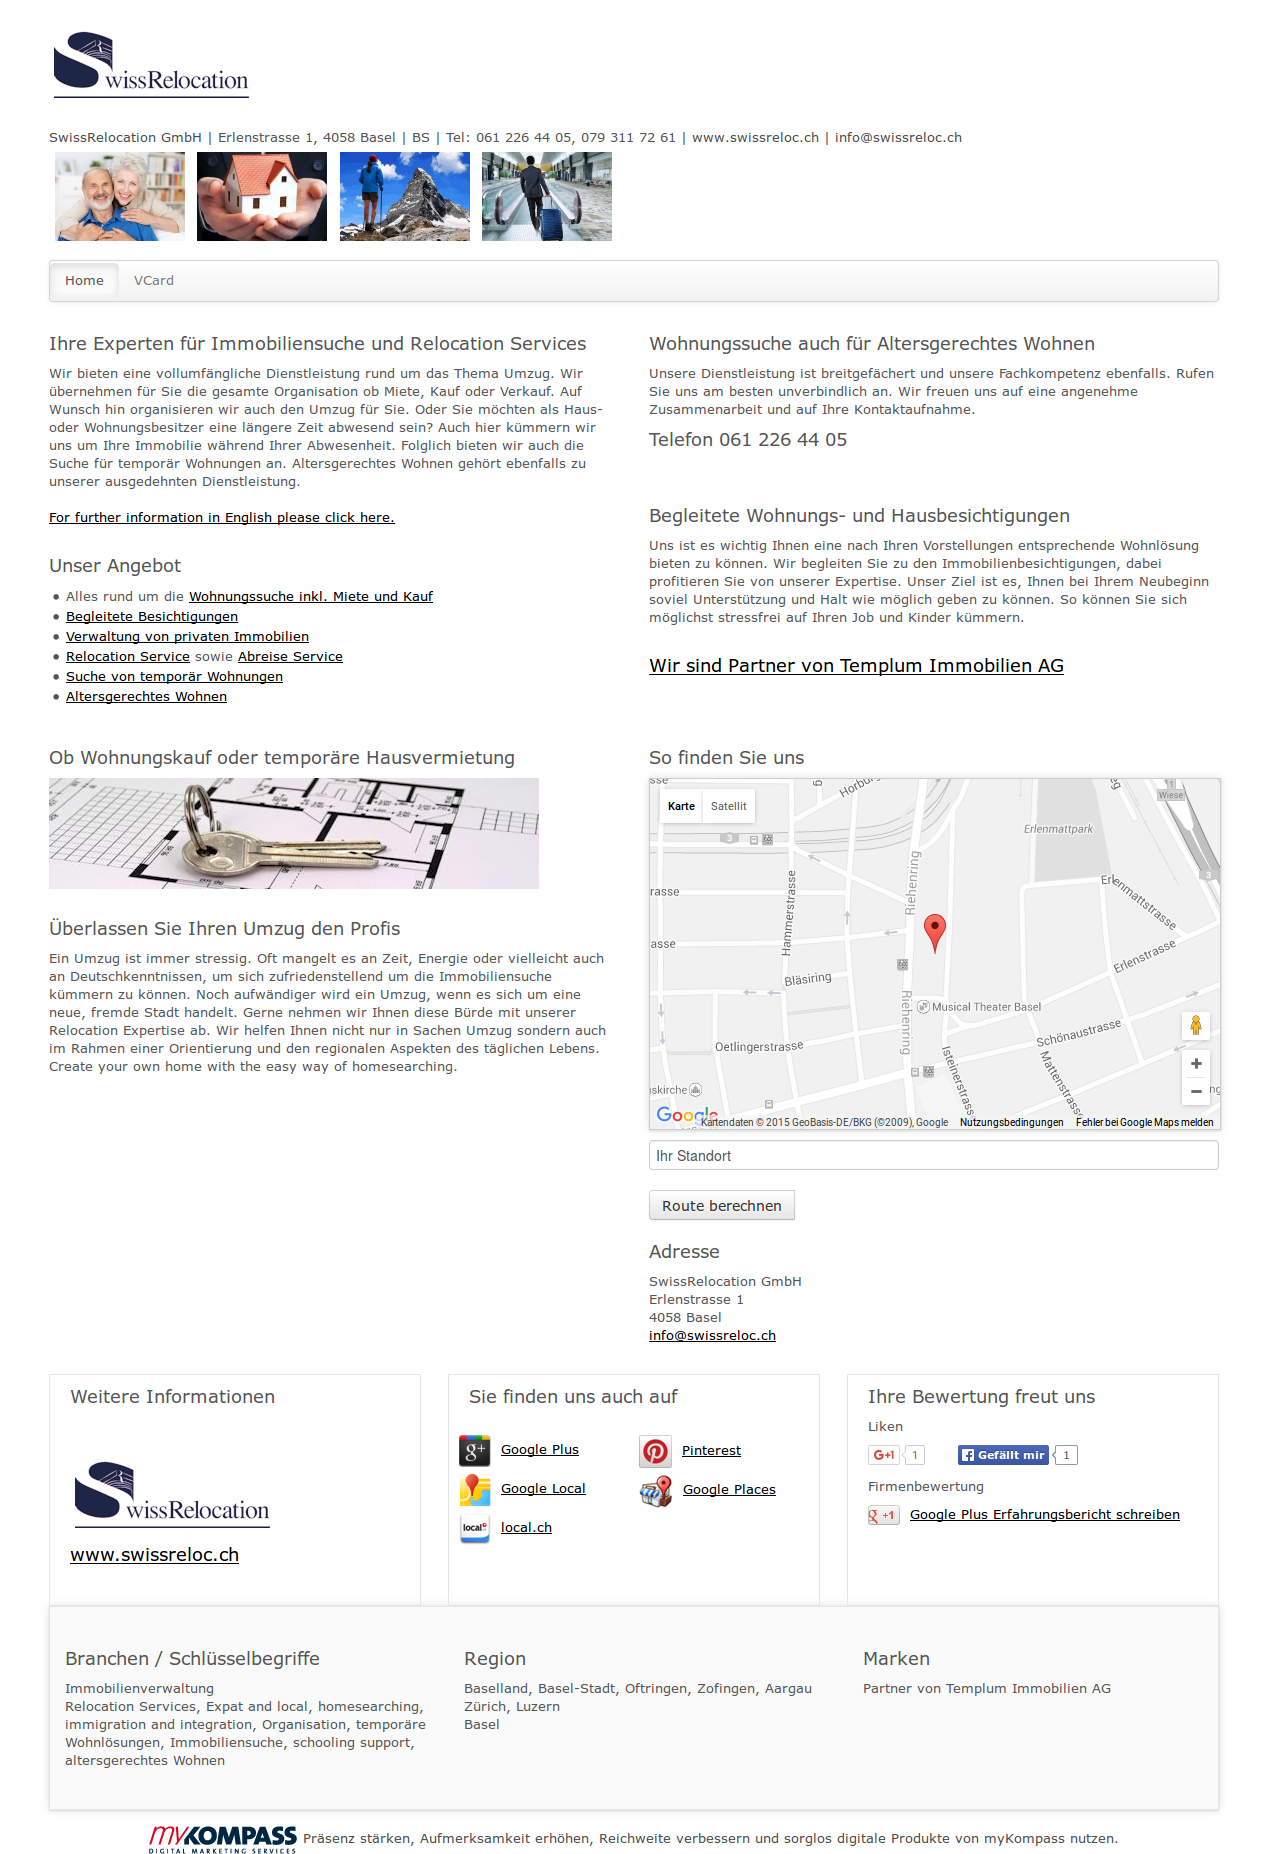 Swissrelocation Gmbh Basel Immobilienverwaltung Relocation Services Expat And Local Immobilien Verwaltung Vermietung